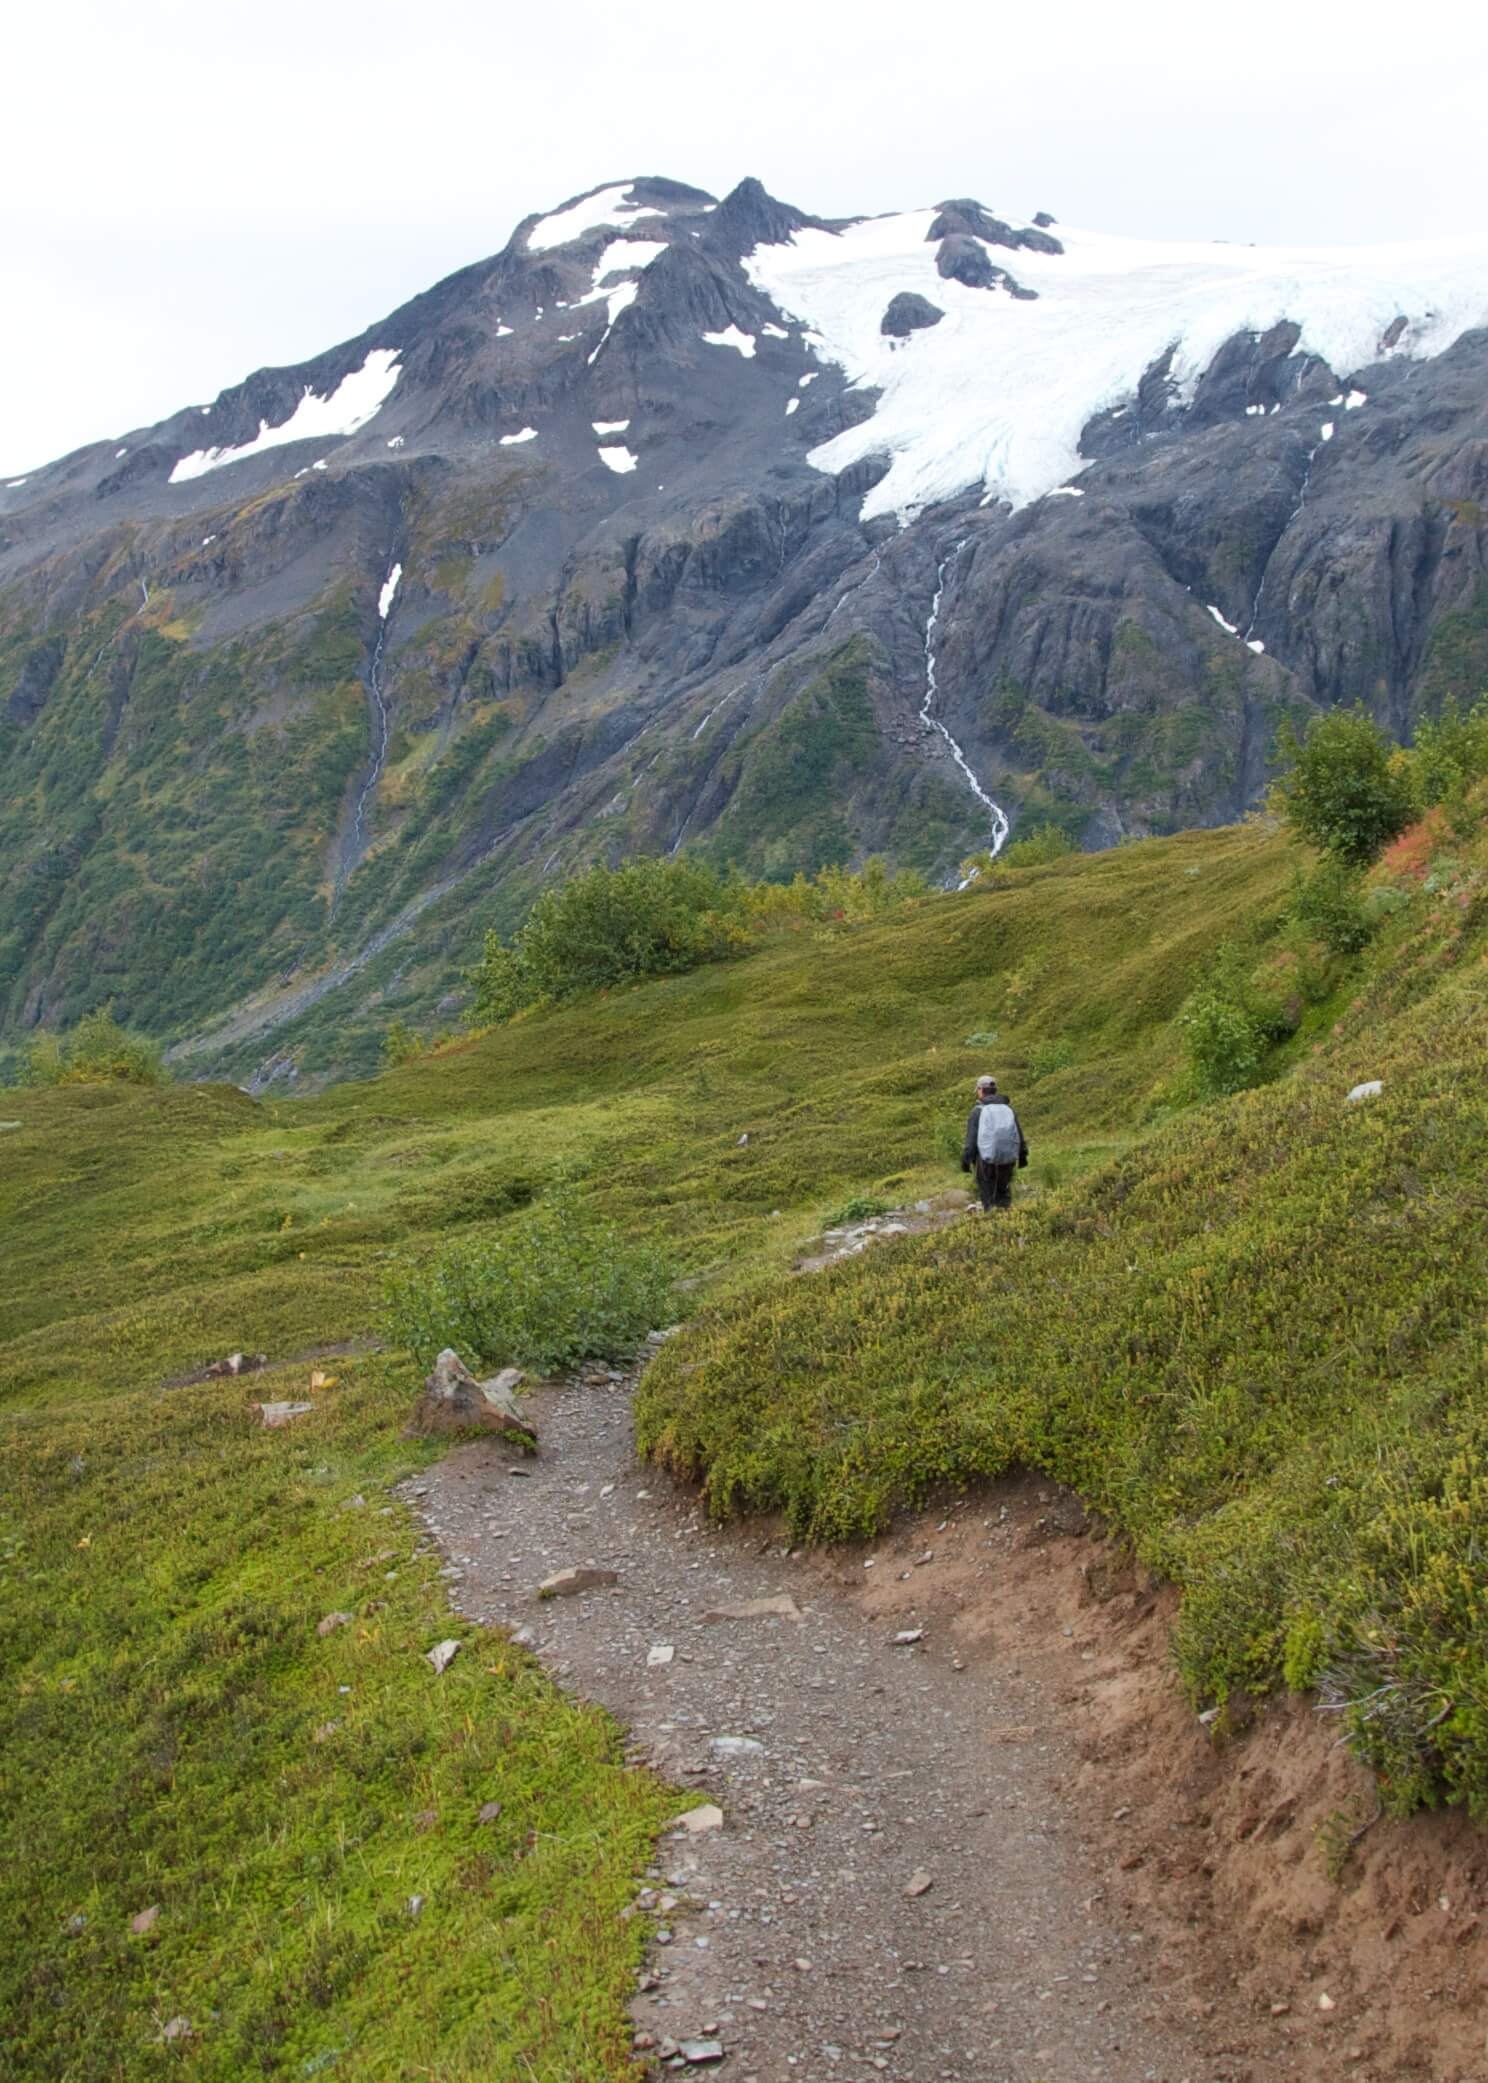 Trekking the Harding Icefields Trail during park visit  #29 .